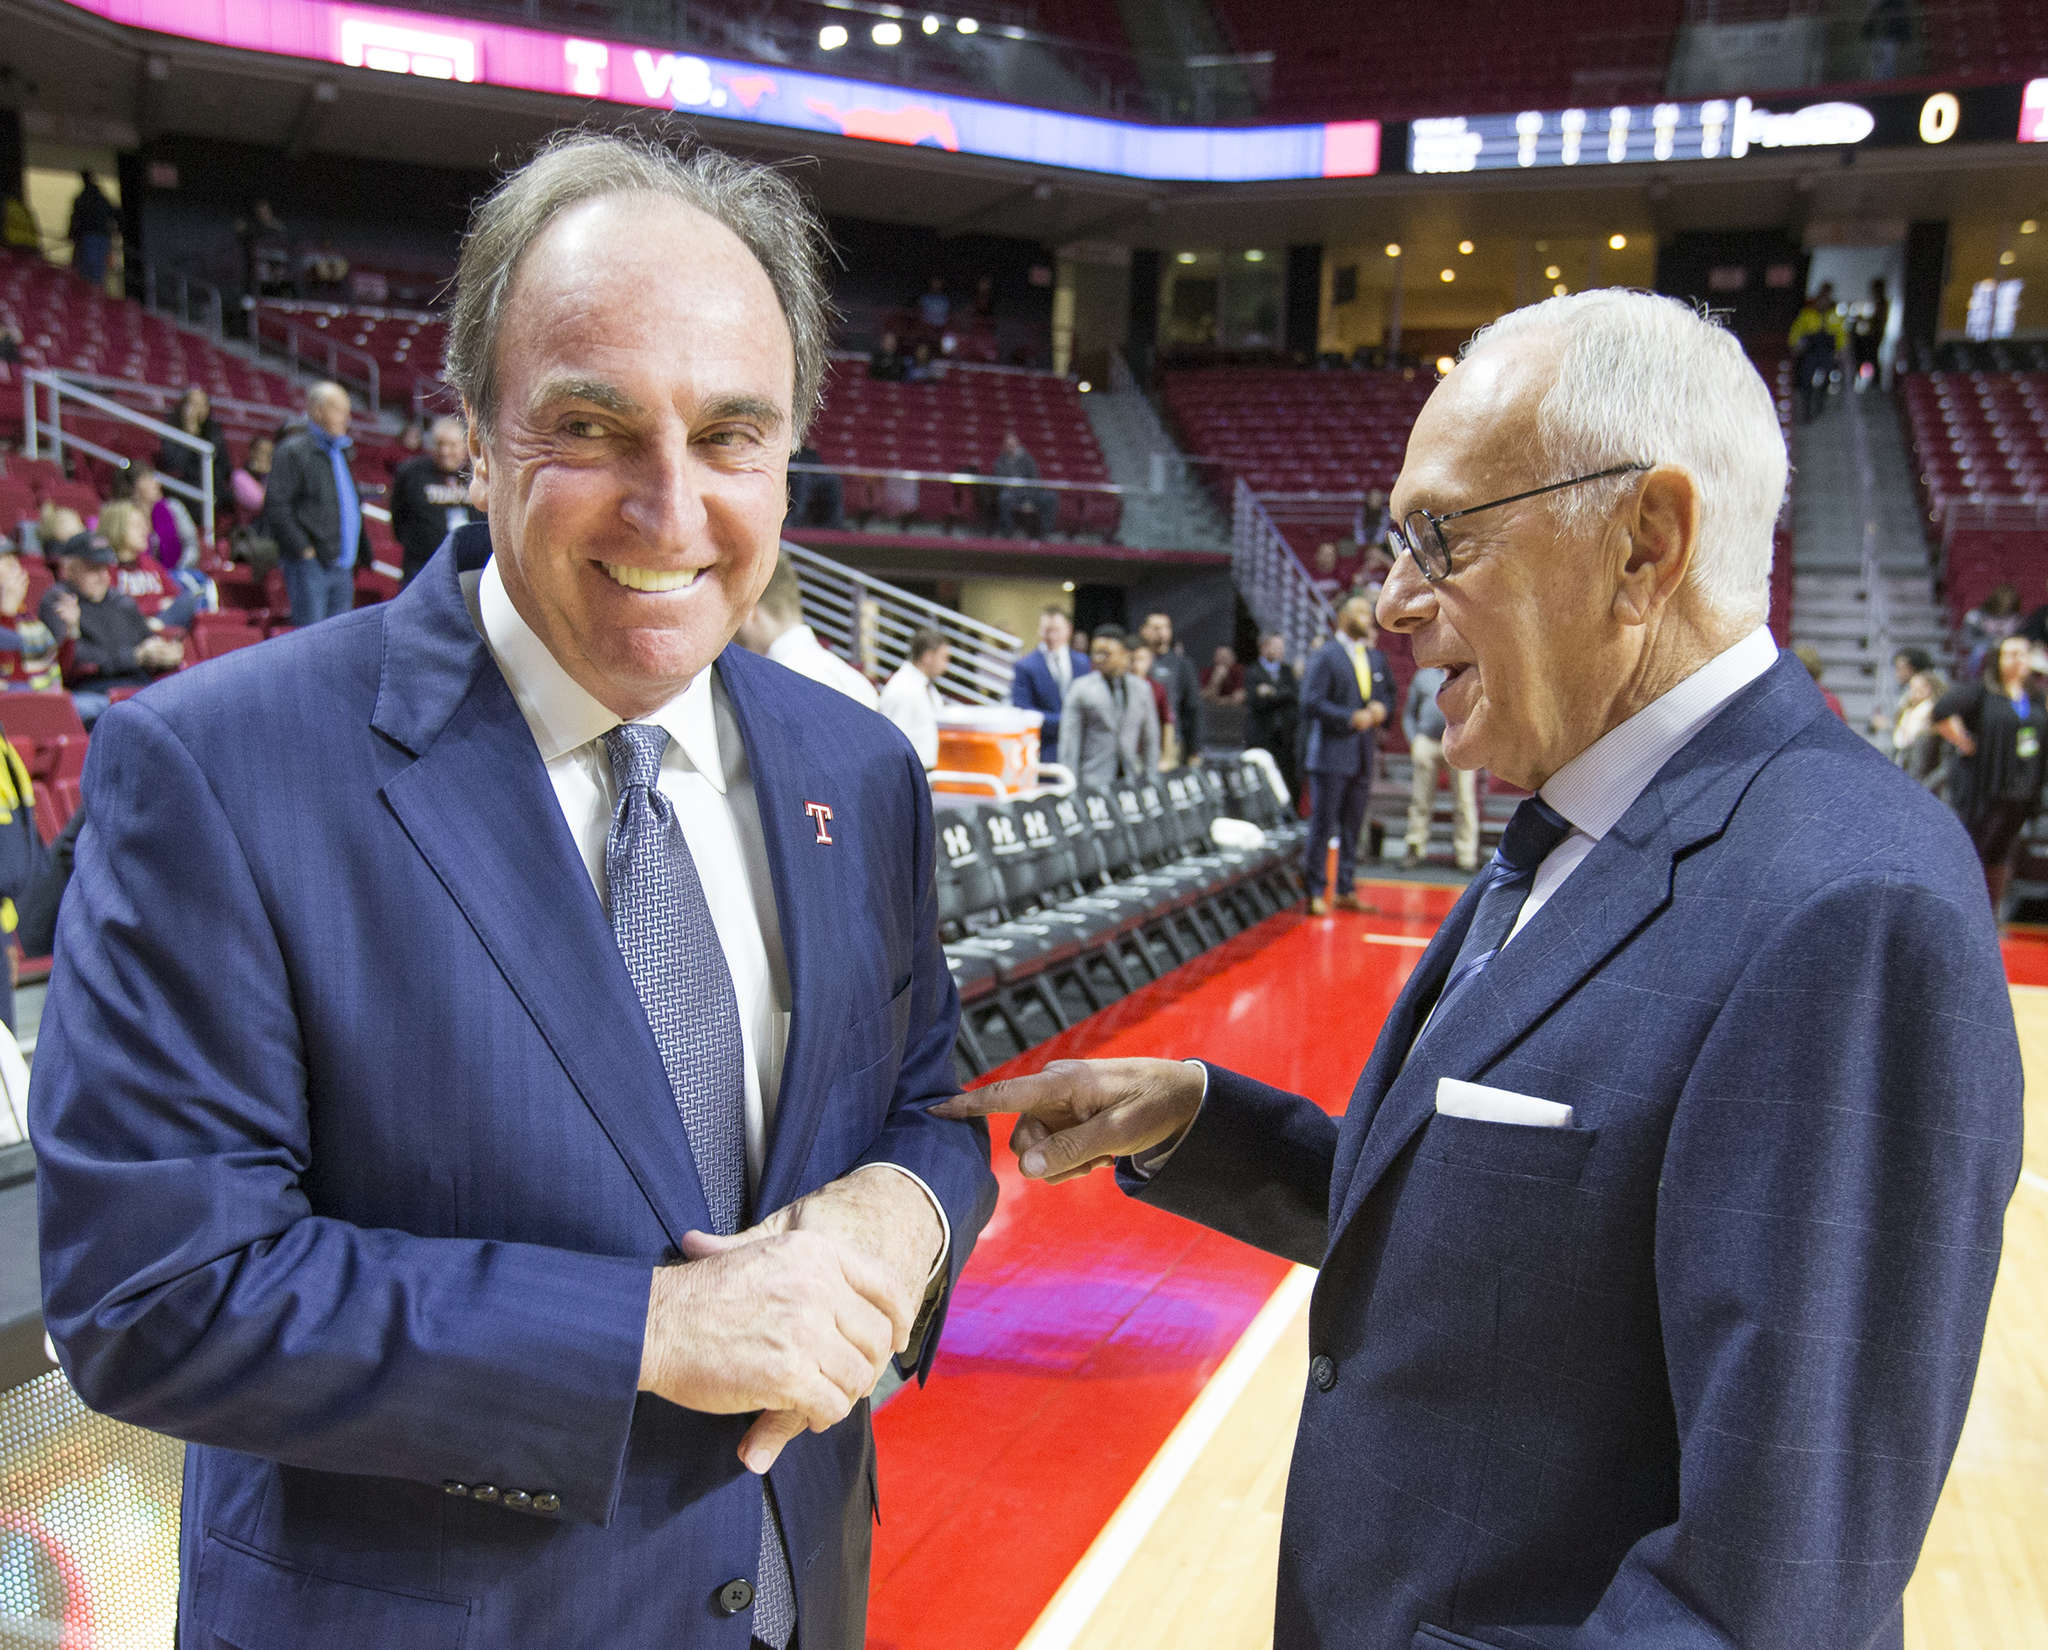 Temple coach Fran Dunphy (left) and SMU coach Larry Brown joke before game. Temple handed SMU its first loss, 89-80. Story, Page 58. CHARLES FOX / STAFF